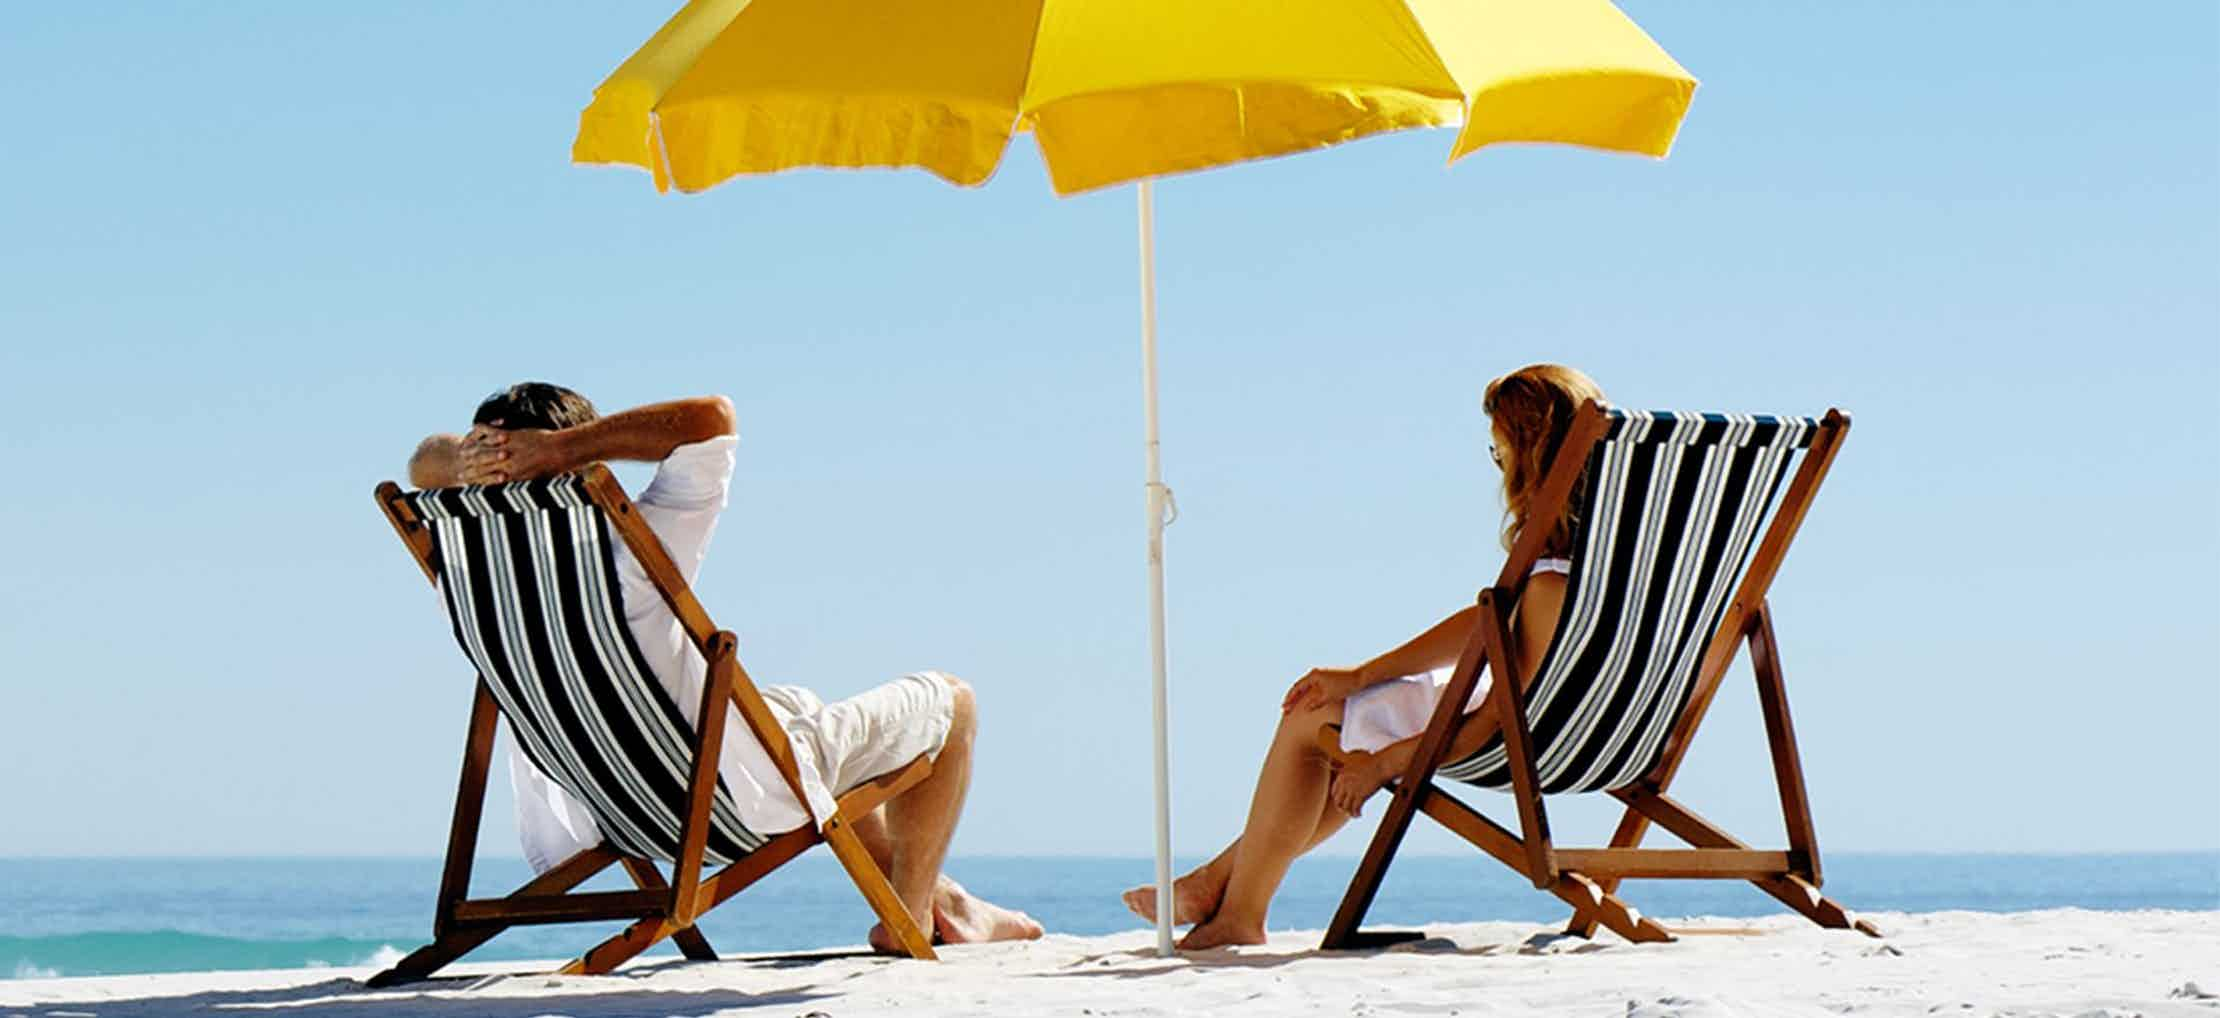 Couple sitting in beach chairs on the beach